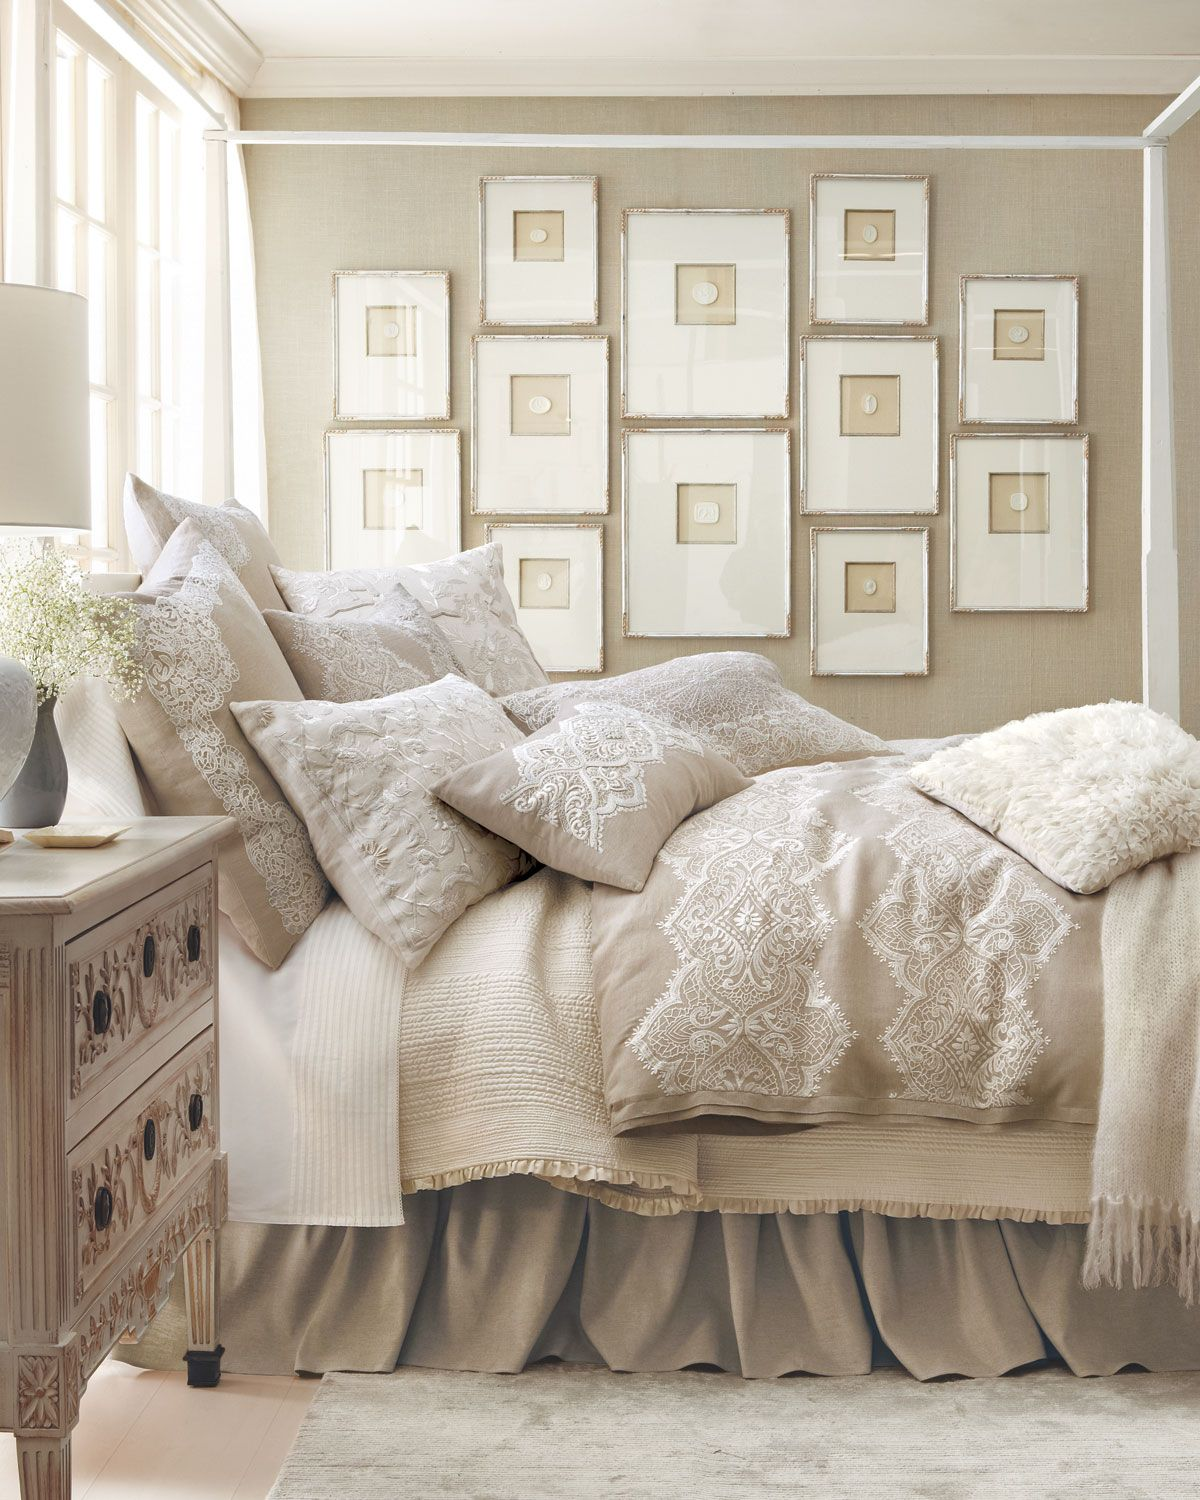 glory bed linens neiman marcus incredible linen and. Black Bedroom Furniture Sets. Home Design Ideas